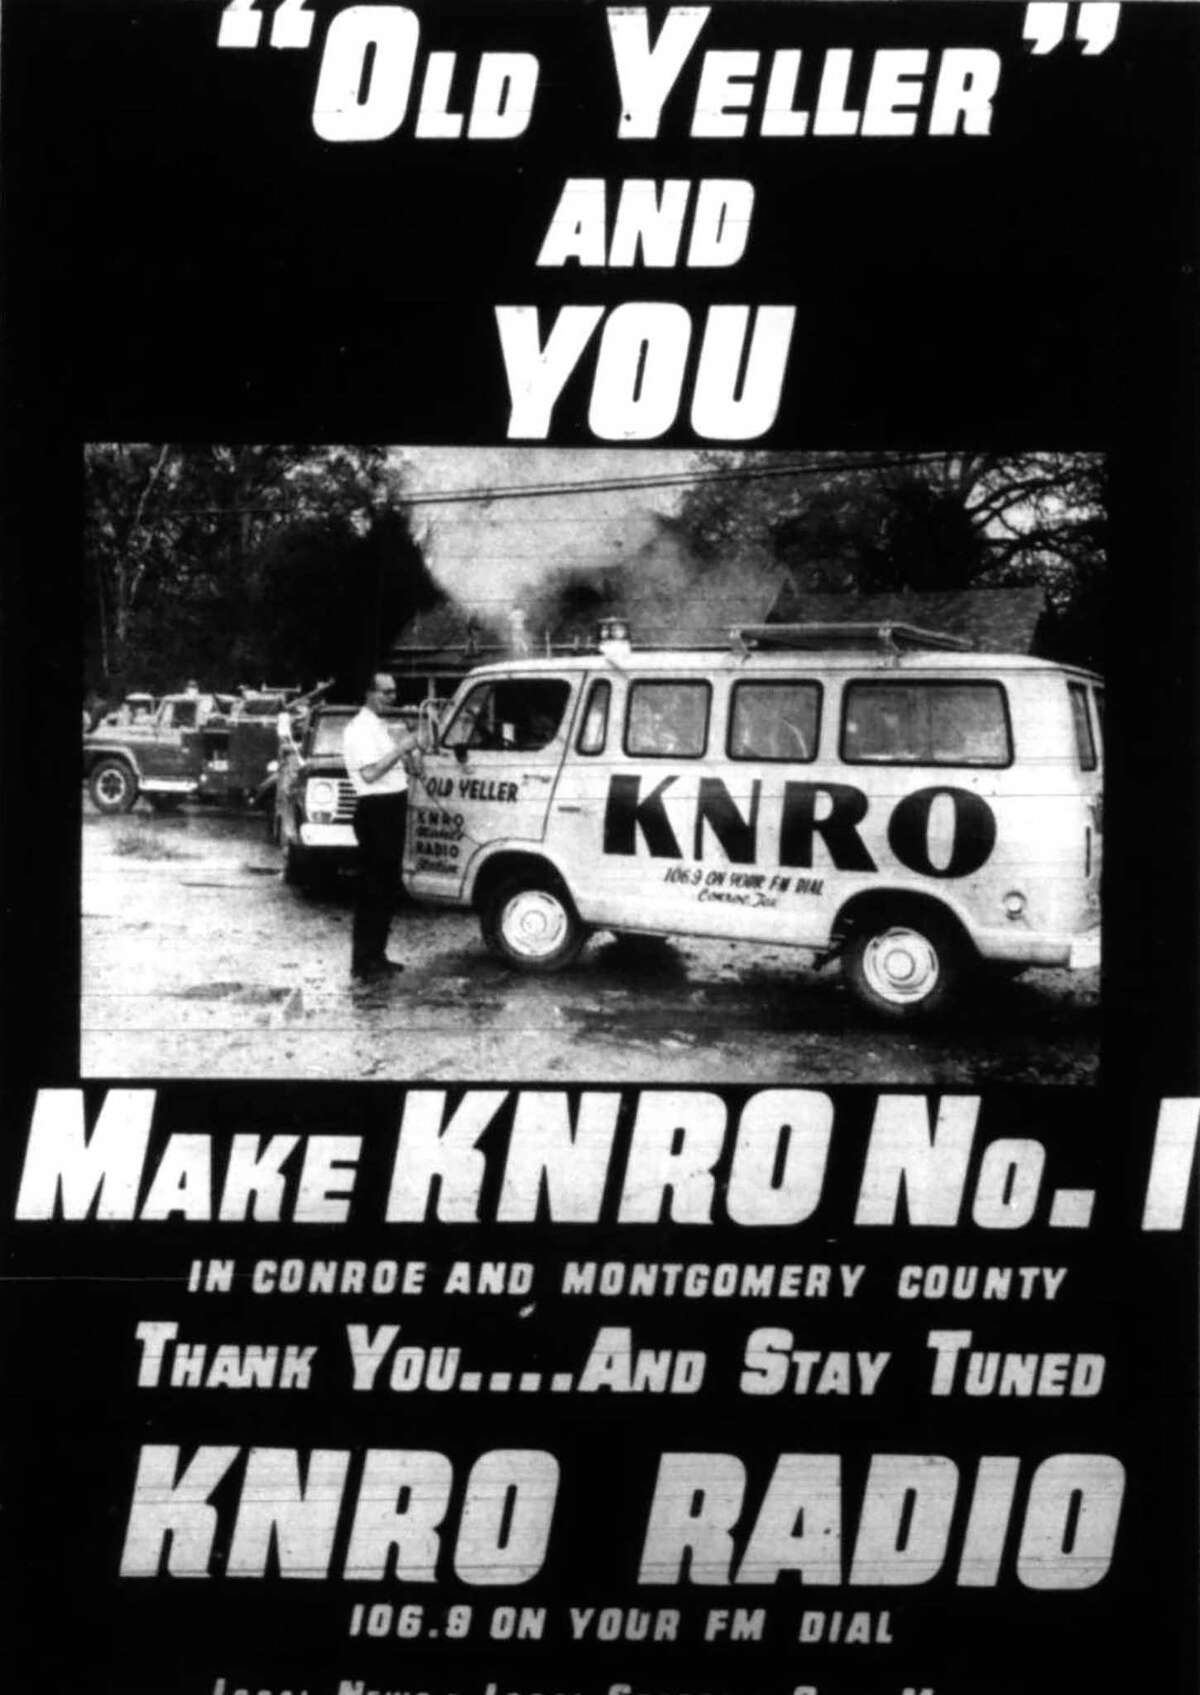 """KNRO reporter Ed Watson and his """"Old Yeller"""" van on the scene of a house fire in the 1960s in Conroe. The KNRO radio station was launched by the Owen family - who also owned The Courier - in the mid-1960s."""